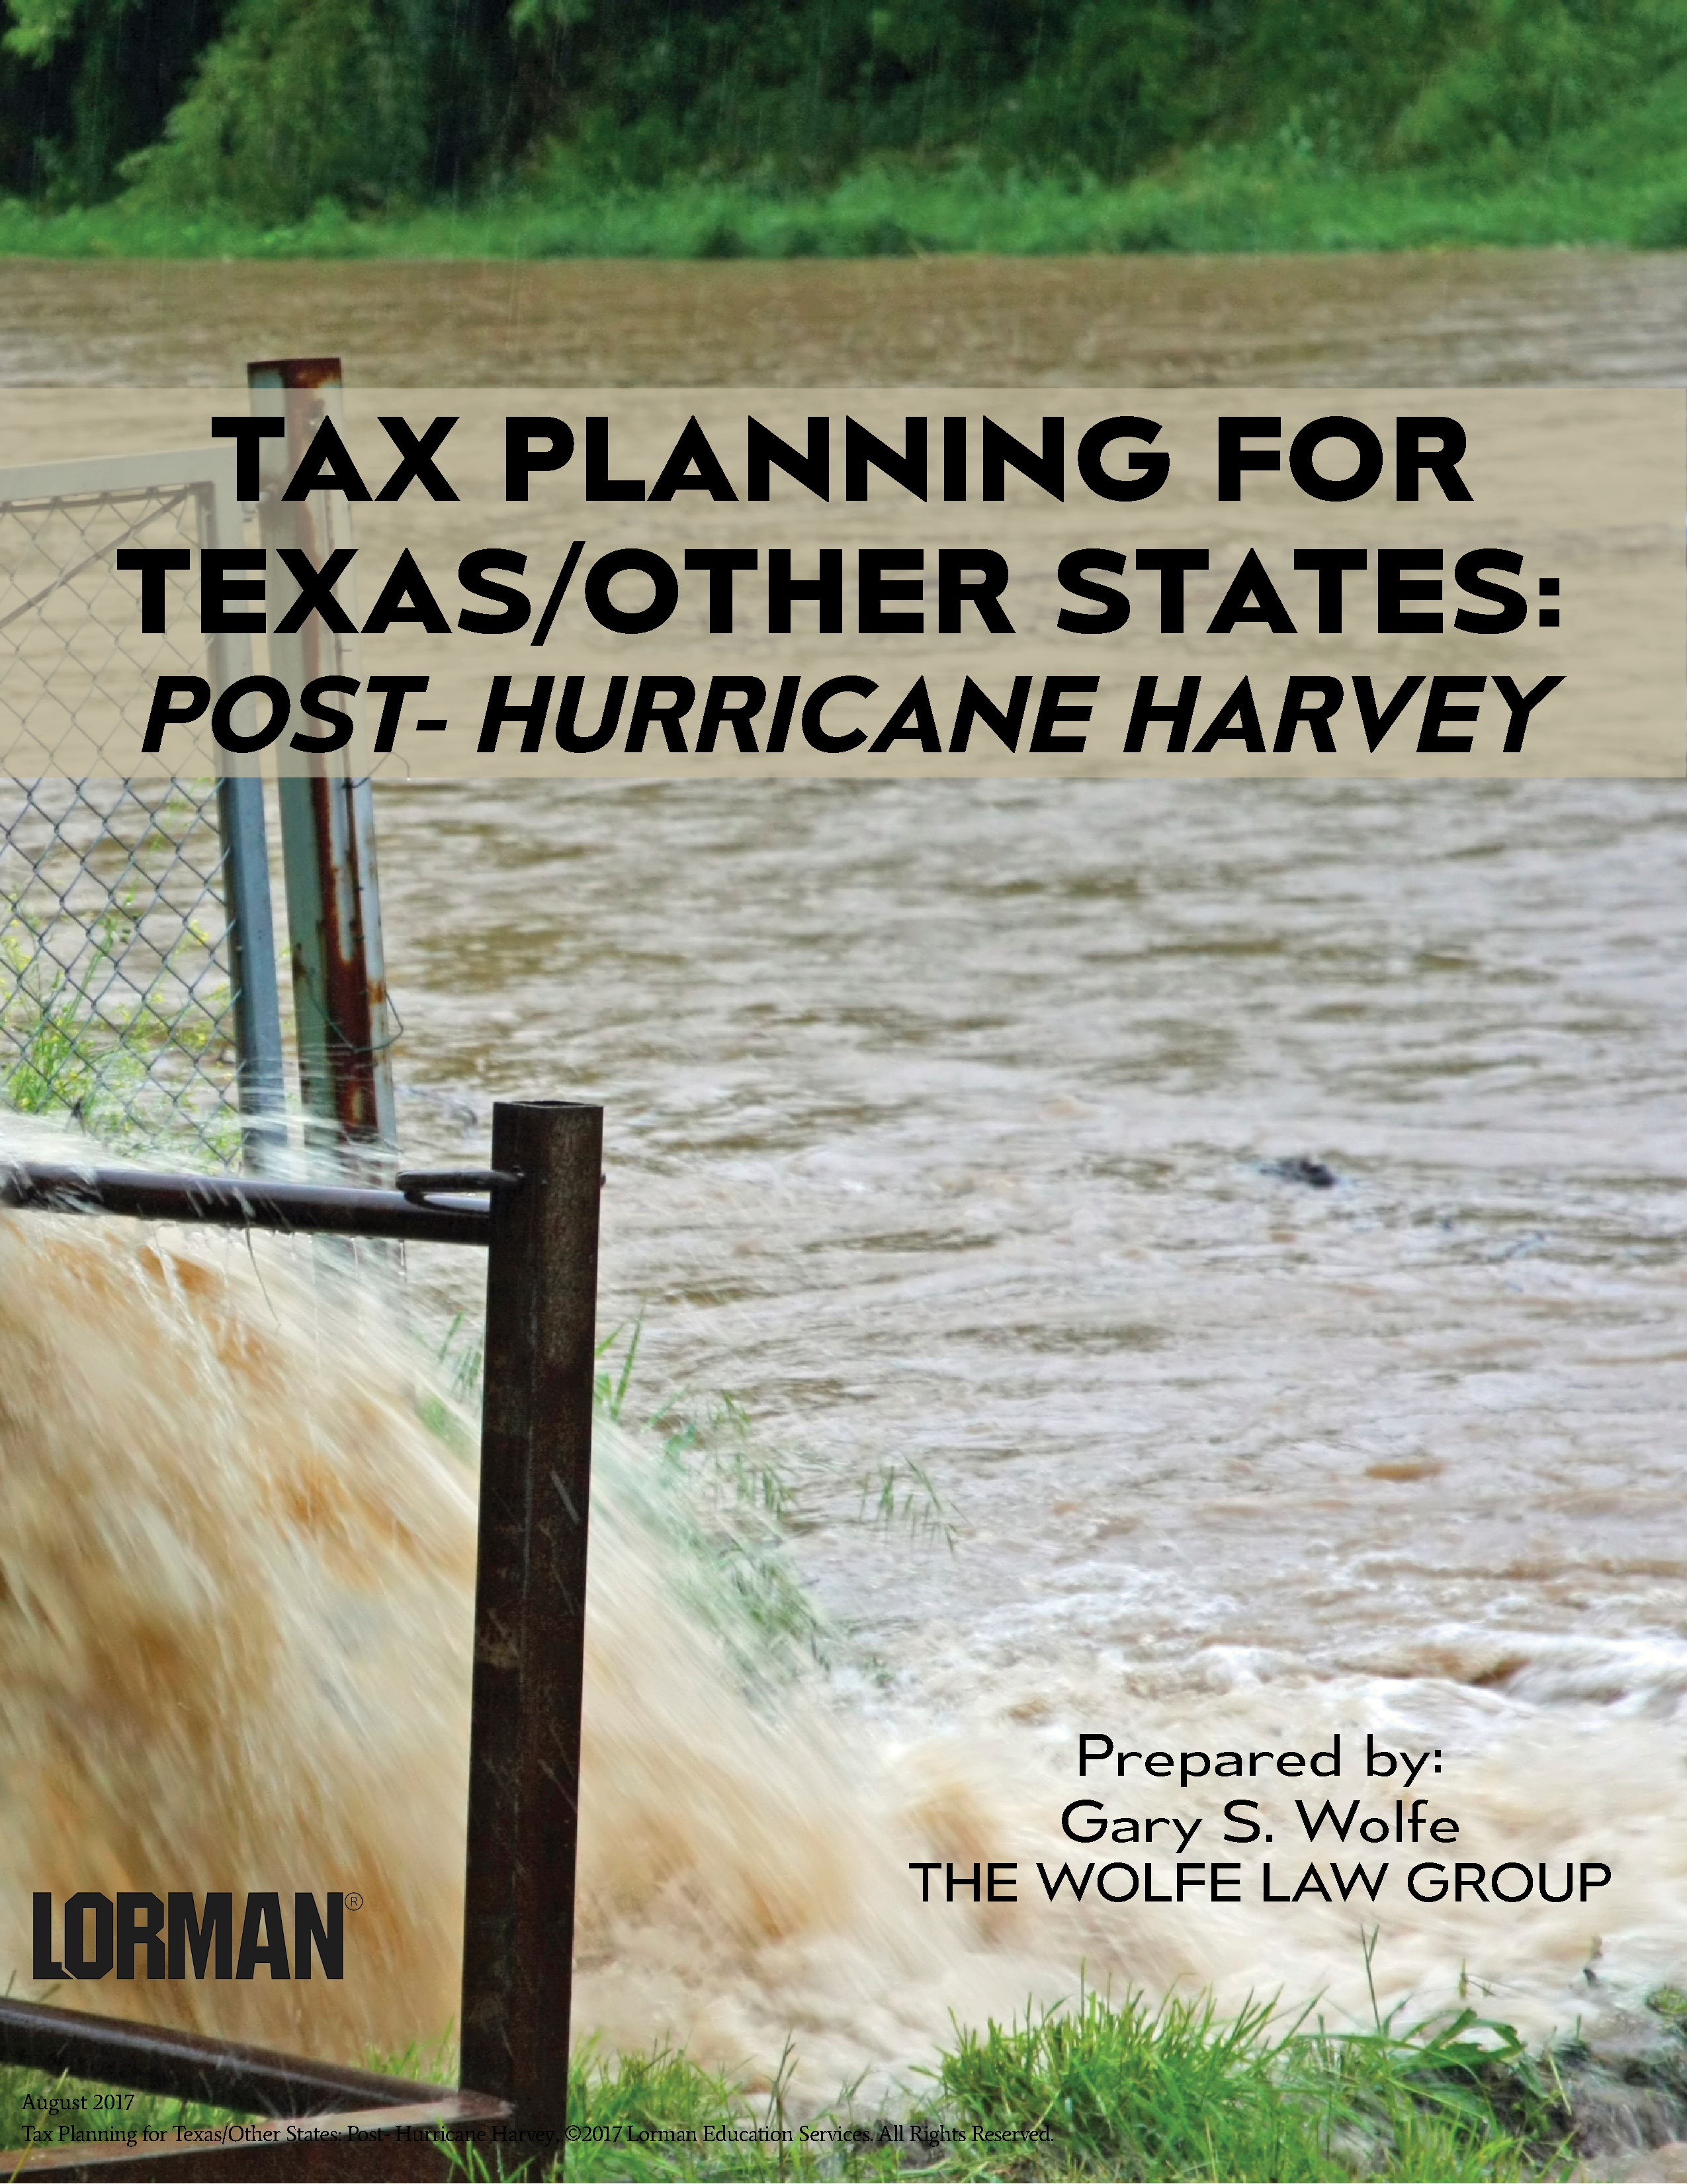 Tax Planning for Texas/Other States - Post-Hurricane Harvey